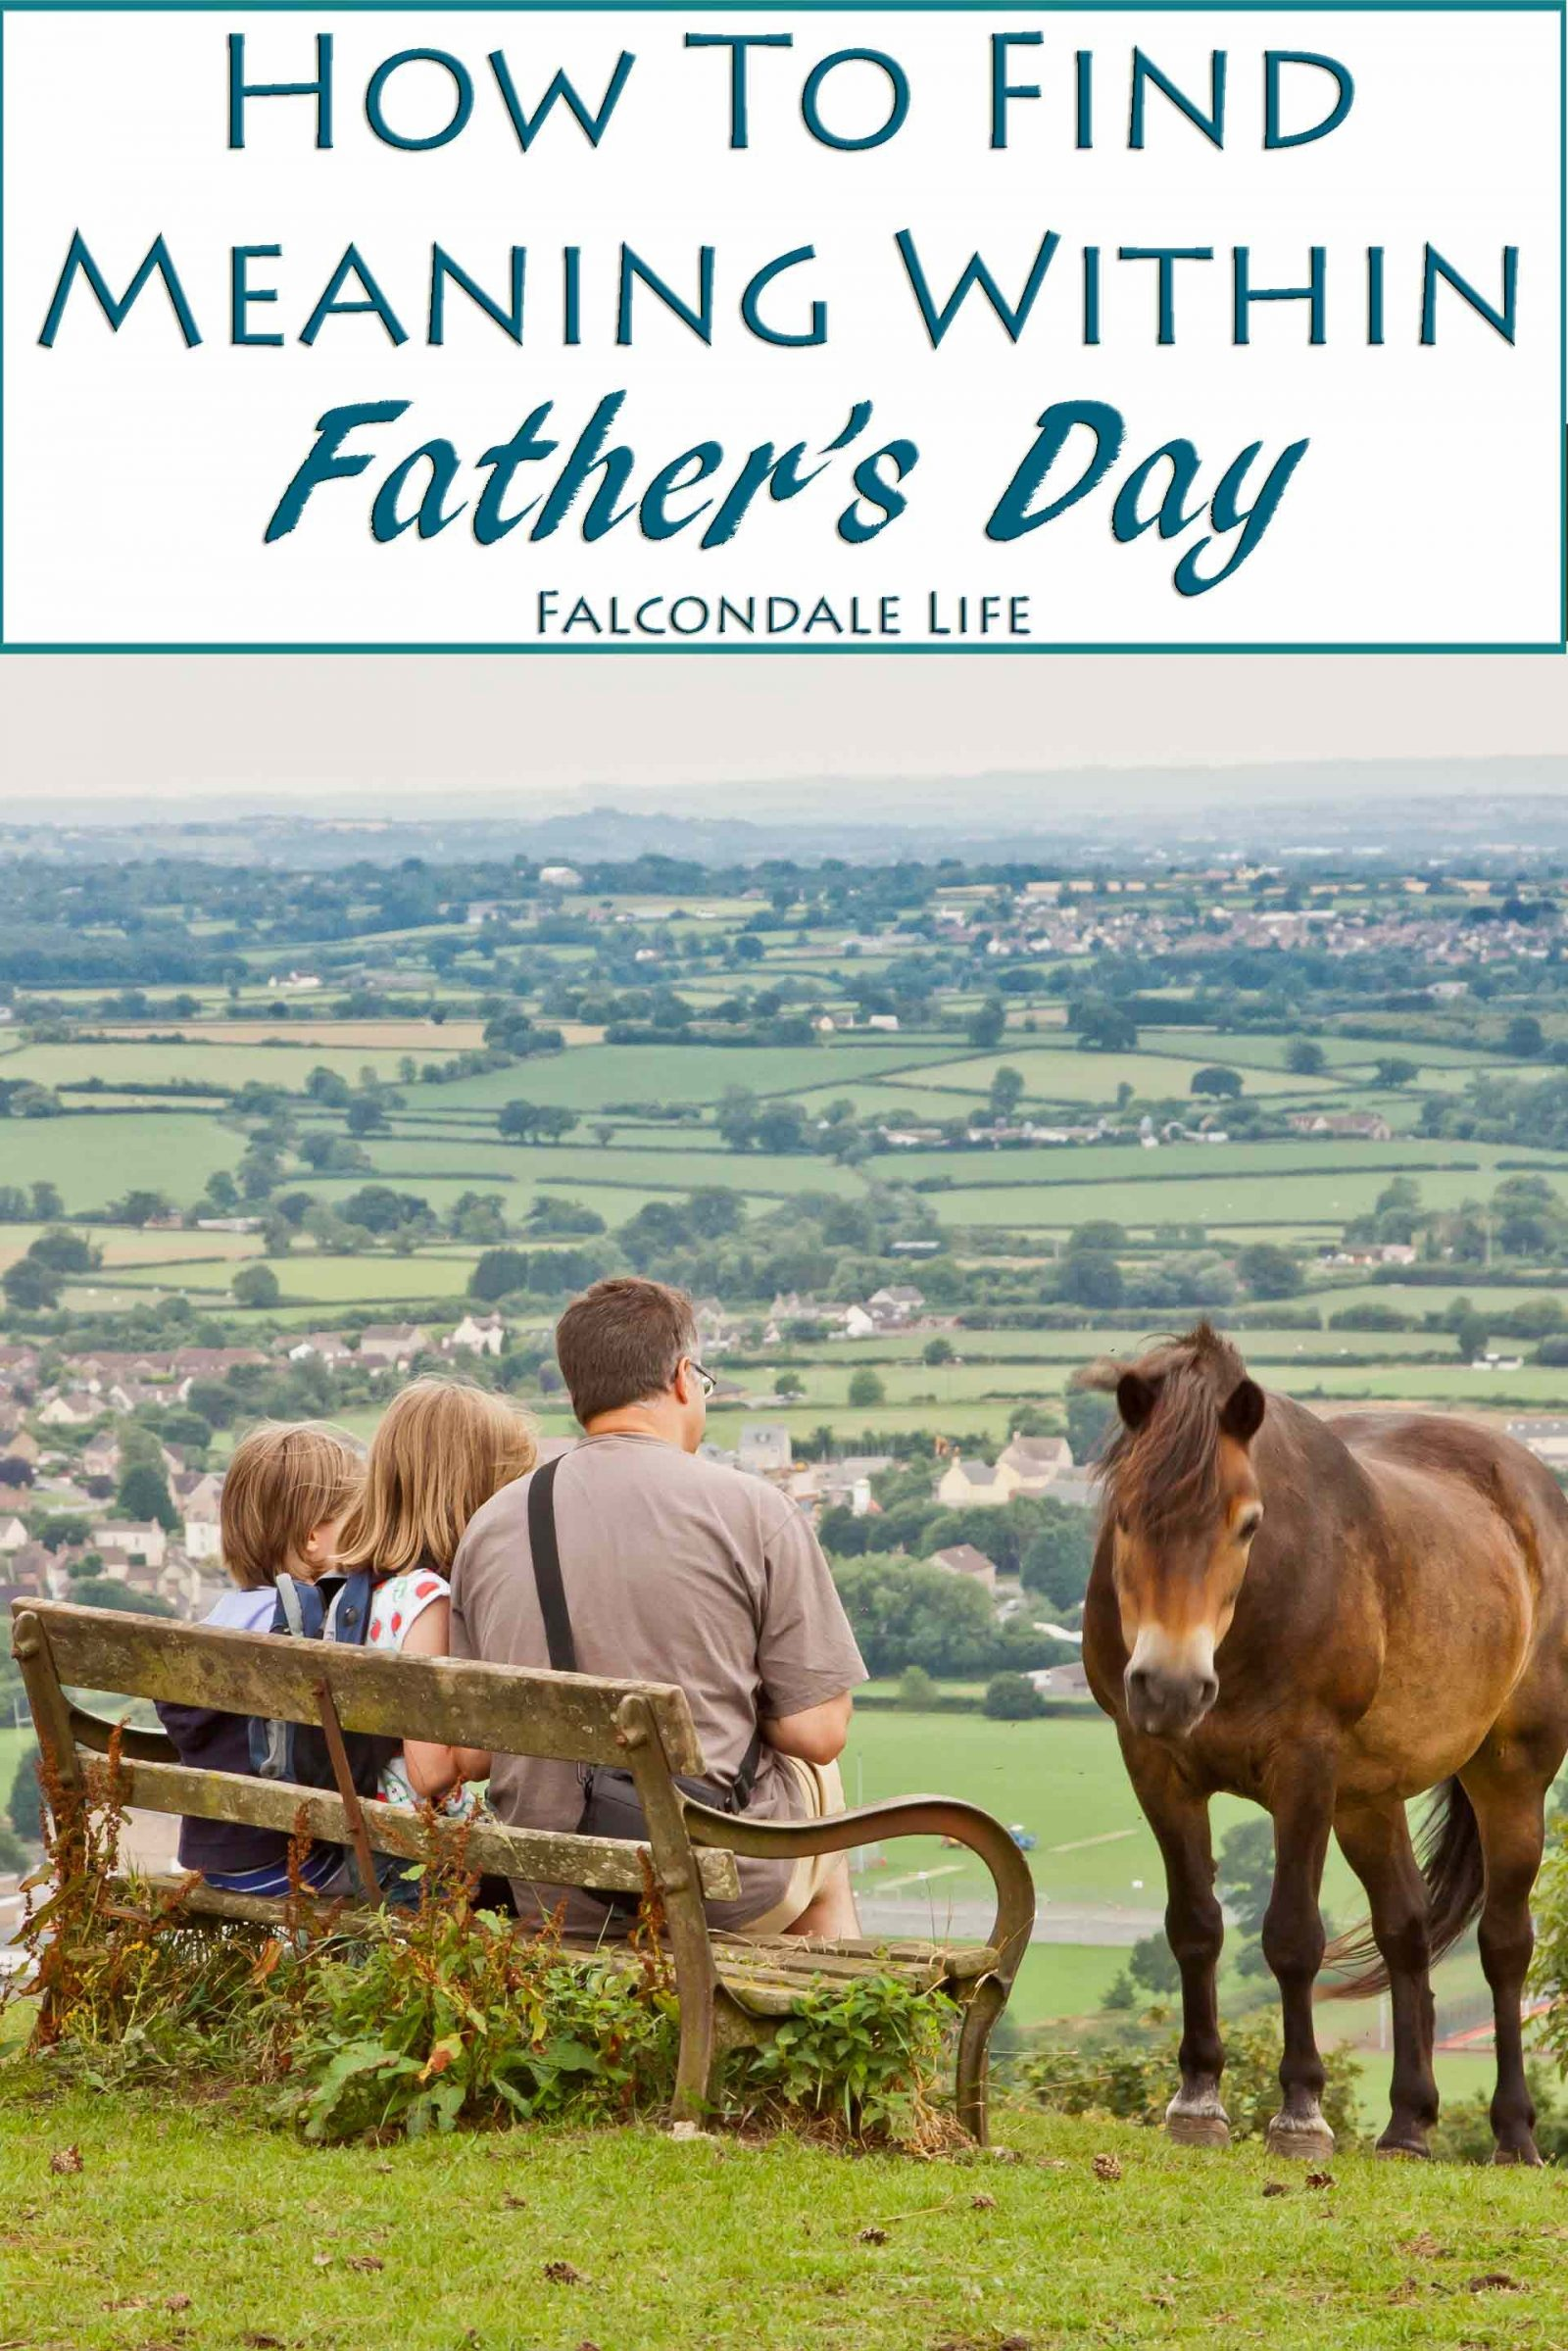 How to Find Meaning Within Father's Day on Falcondale Life blog. Photo: On the Edge at Wotton Under Edge, Cotswolds. Is Father's Day just an invention by a greetings card company to make money? Unlike Mothering Sunday, it's not part of the church calendar but that doesn't mean we should dismiss it as an American import.